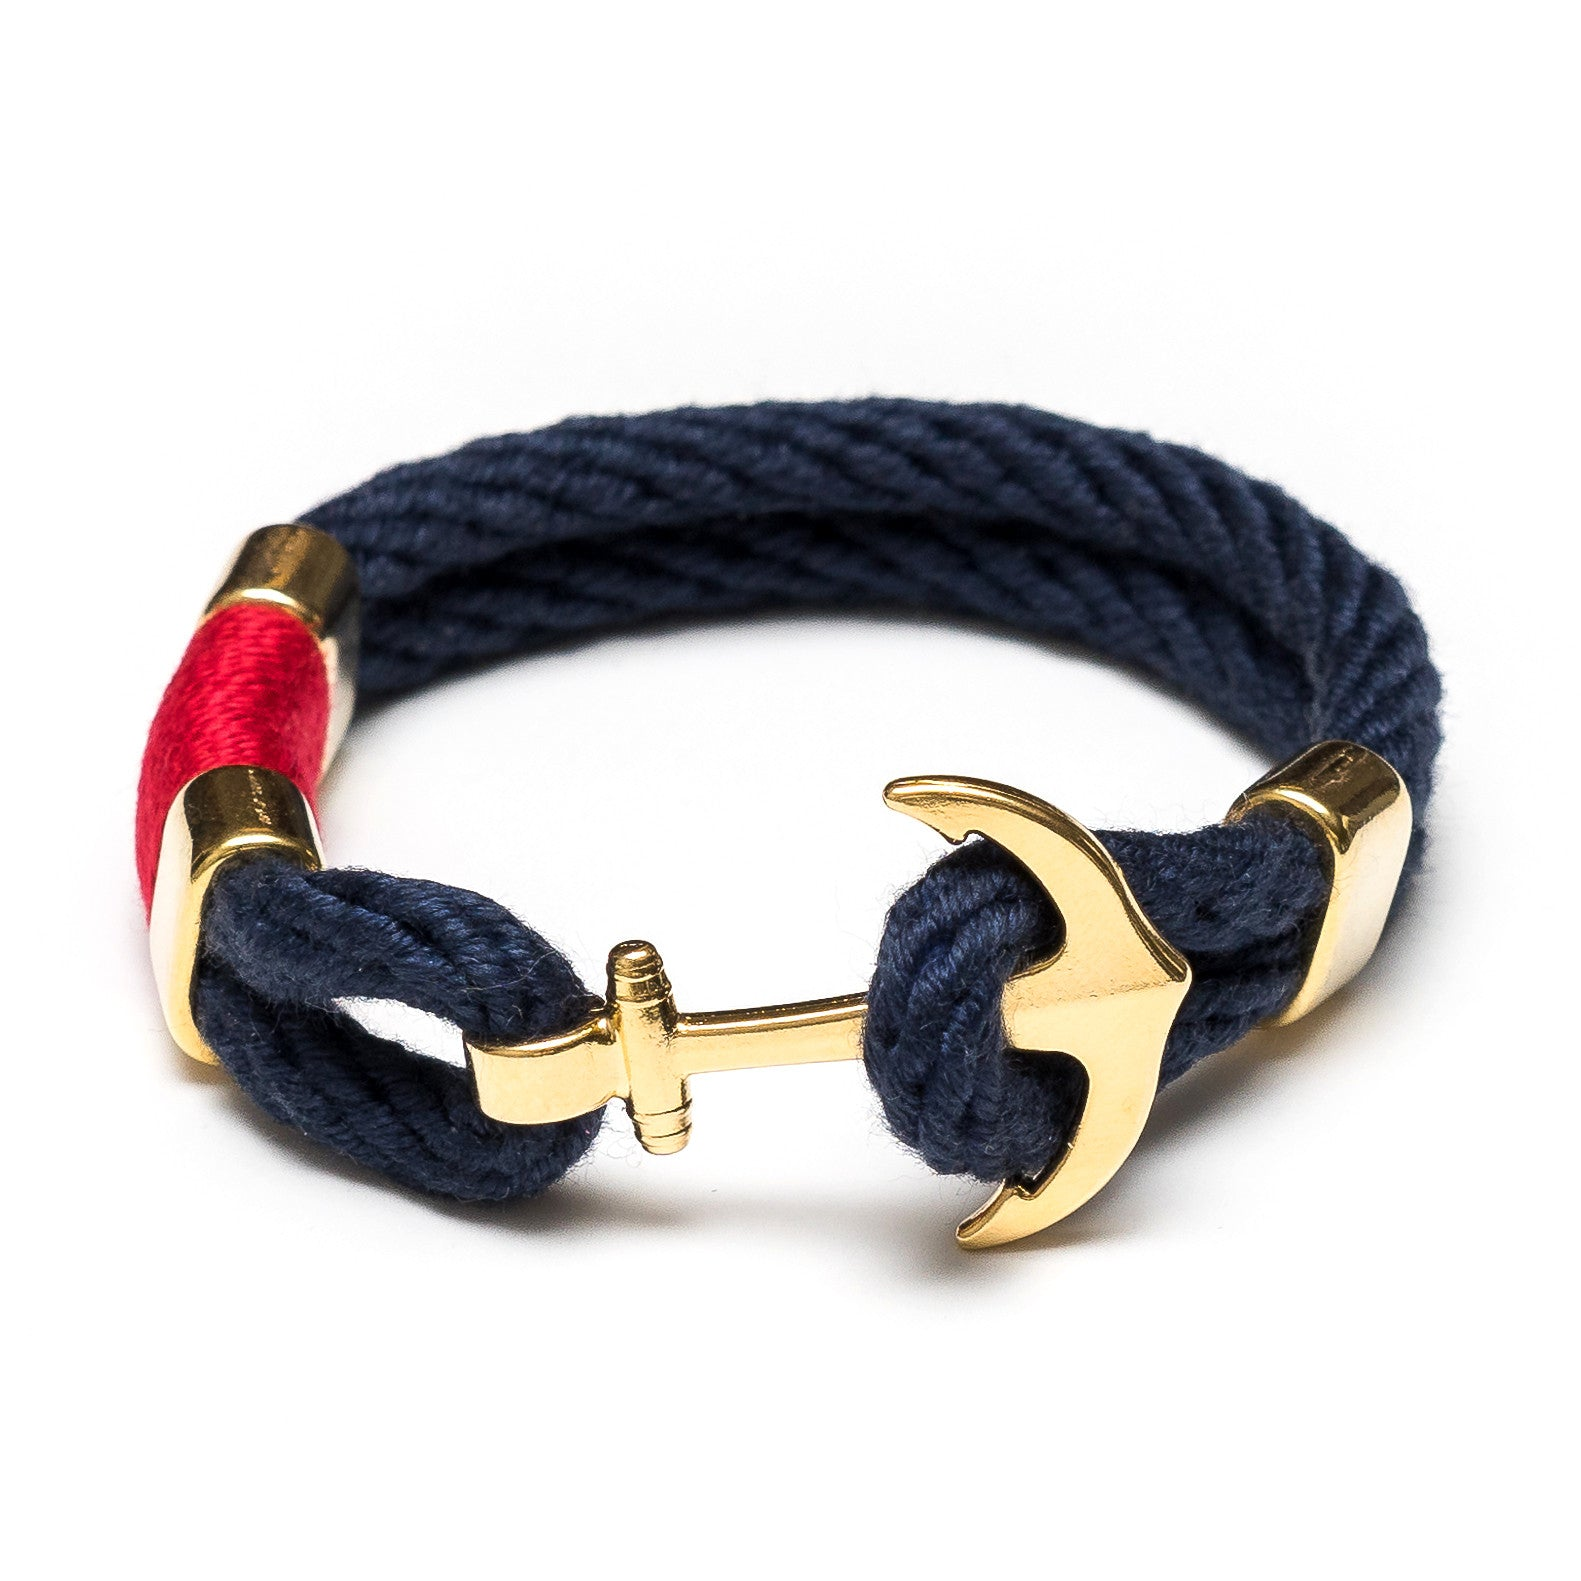 aristokrat nautical leather products bracelet black rope